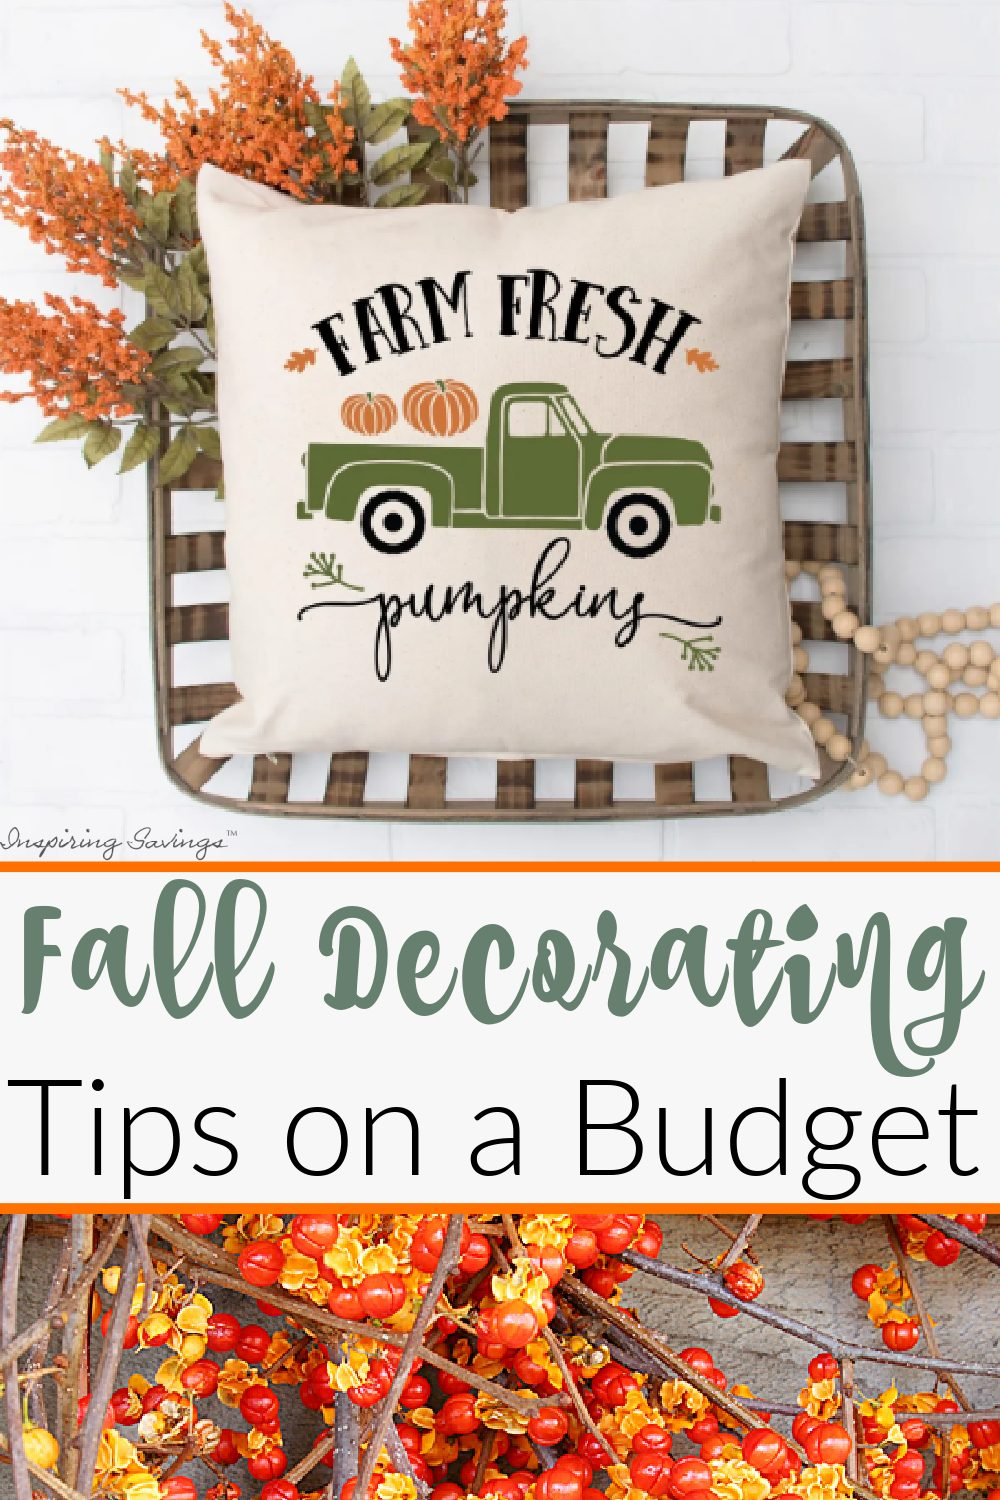 """Bittersweet vine image with text overlay """"Fall Decorating Tips on a Budget"""""""